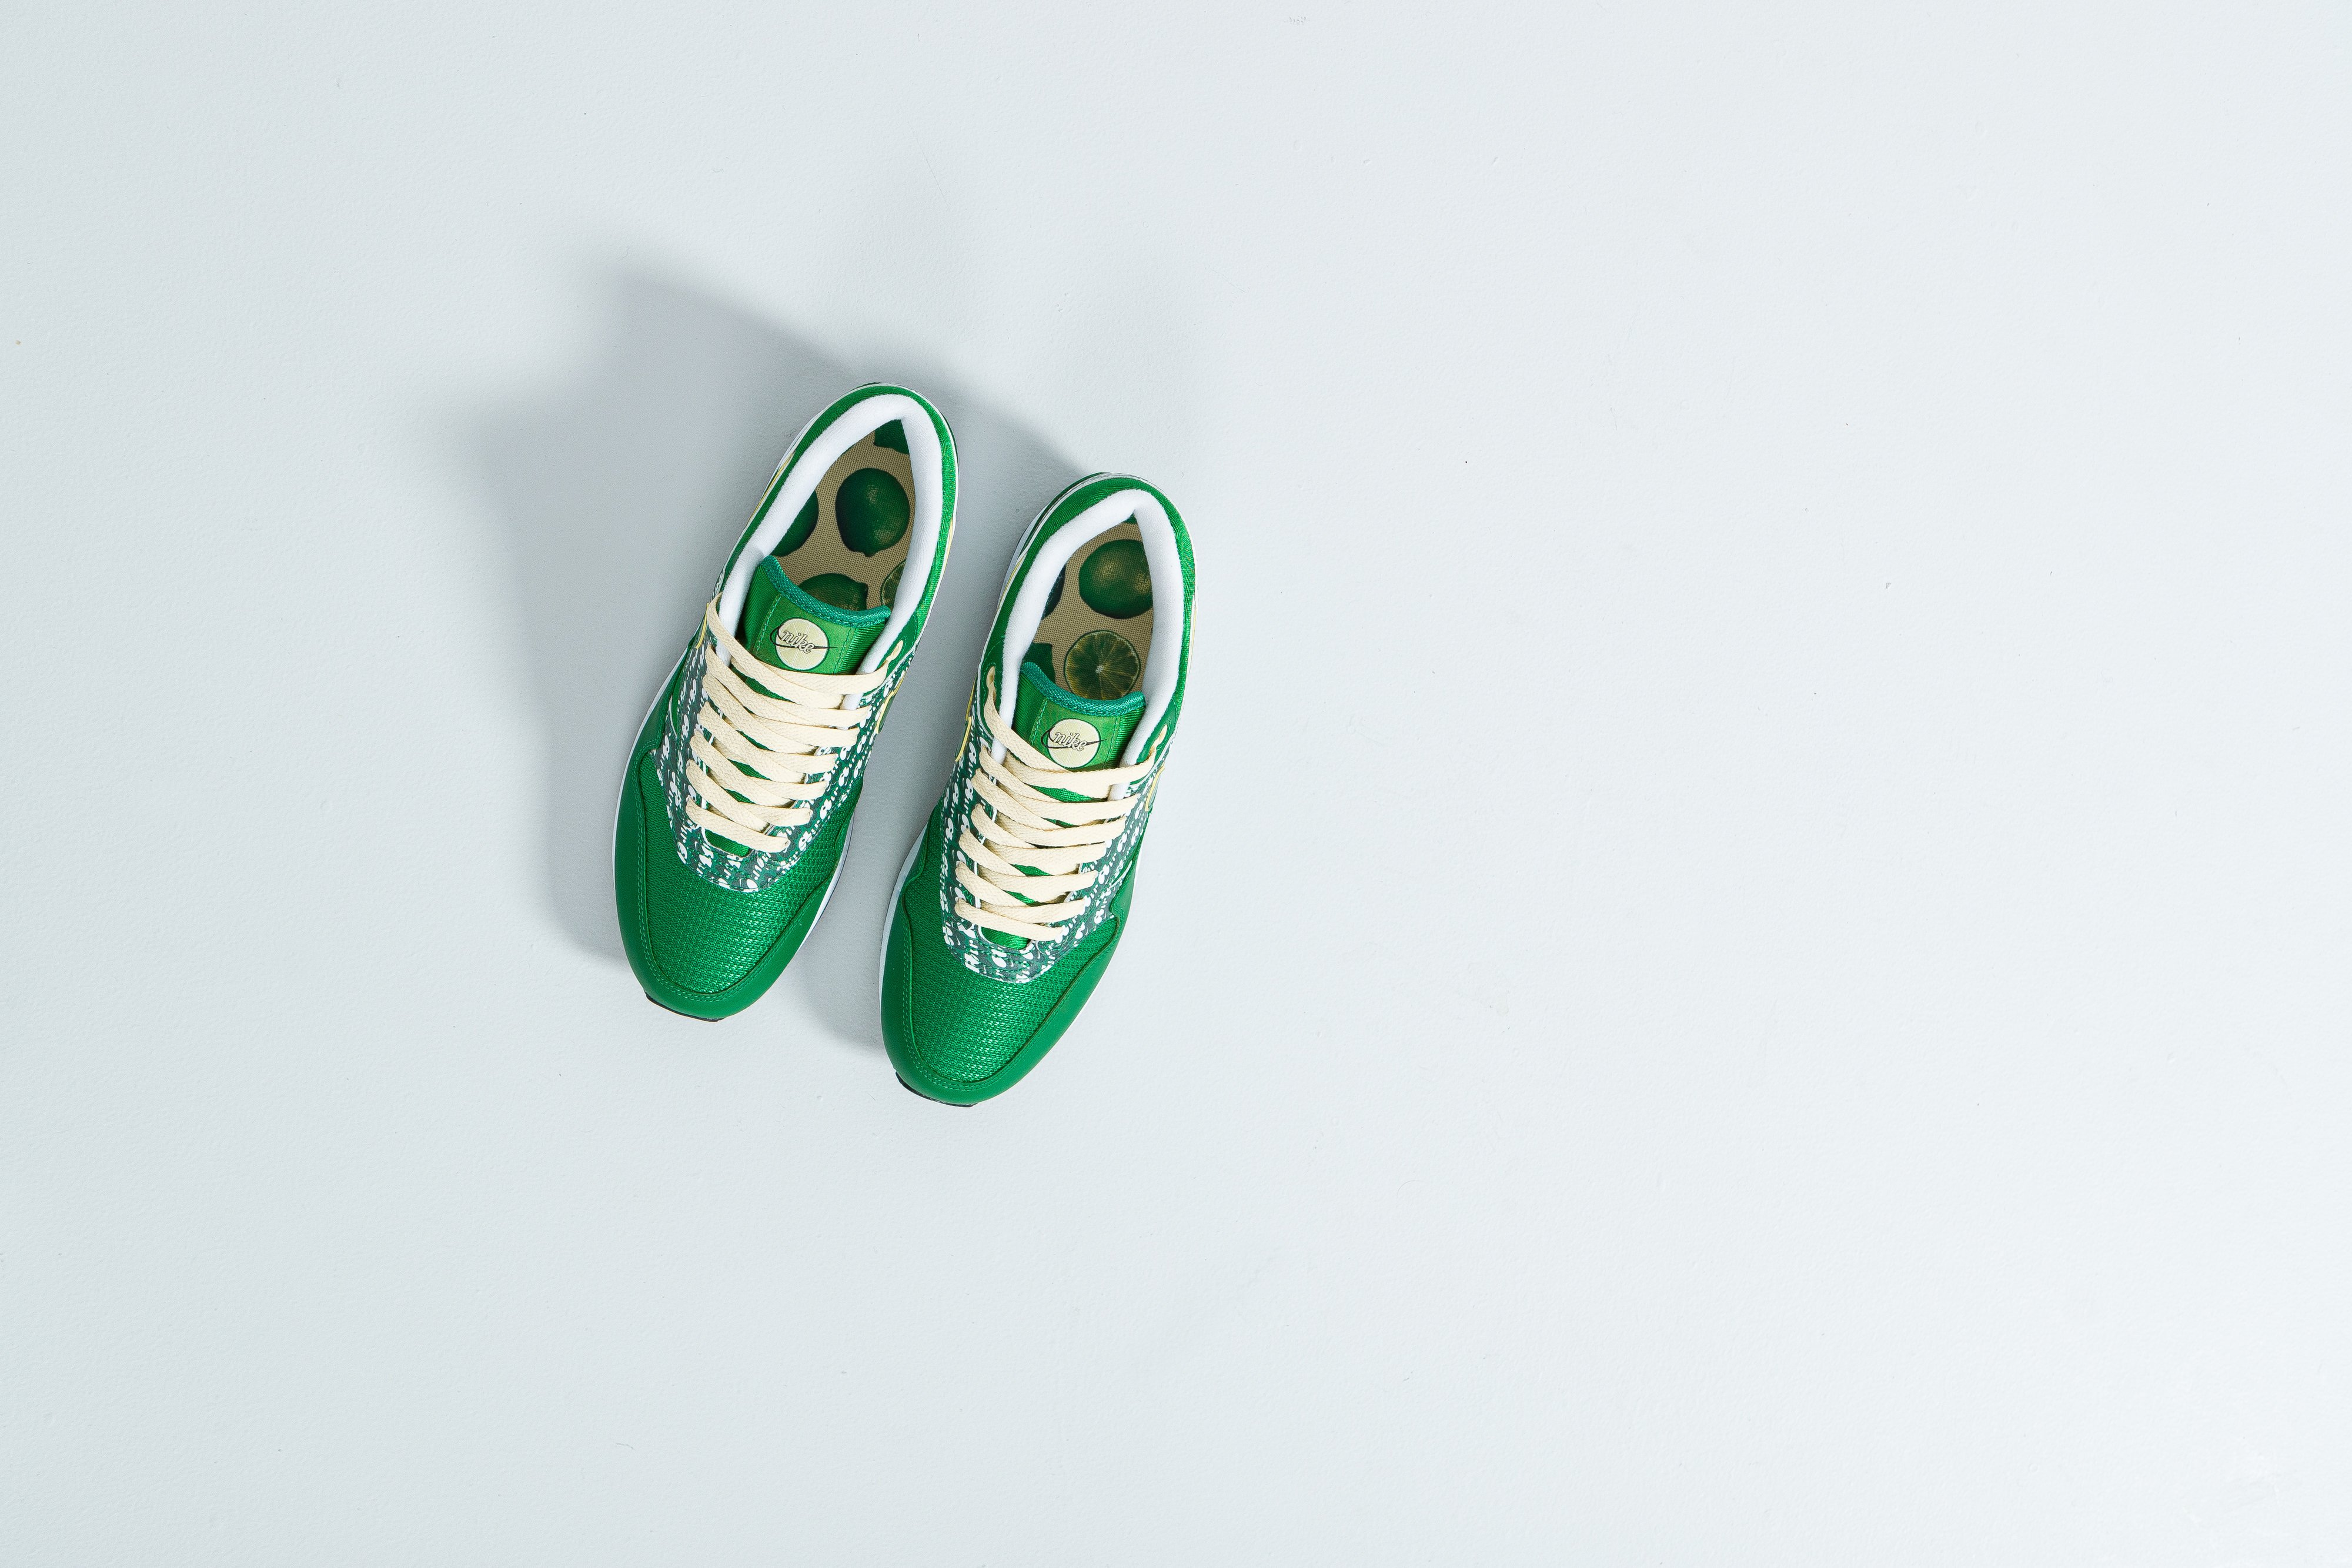 Up There Launches - Nike Air Max 1 Premium - Pine Green/Pine Green-True White